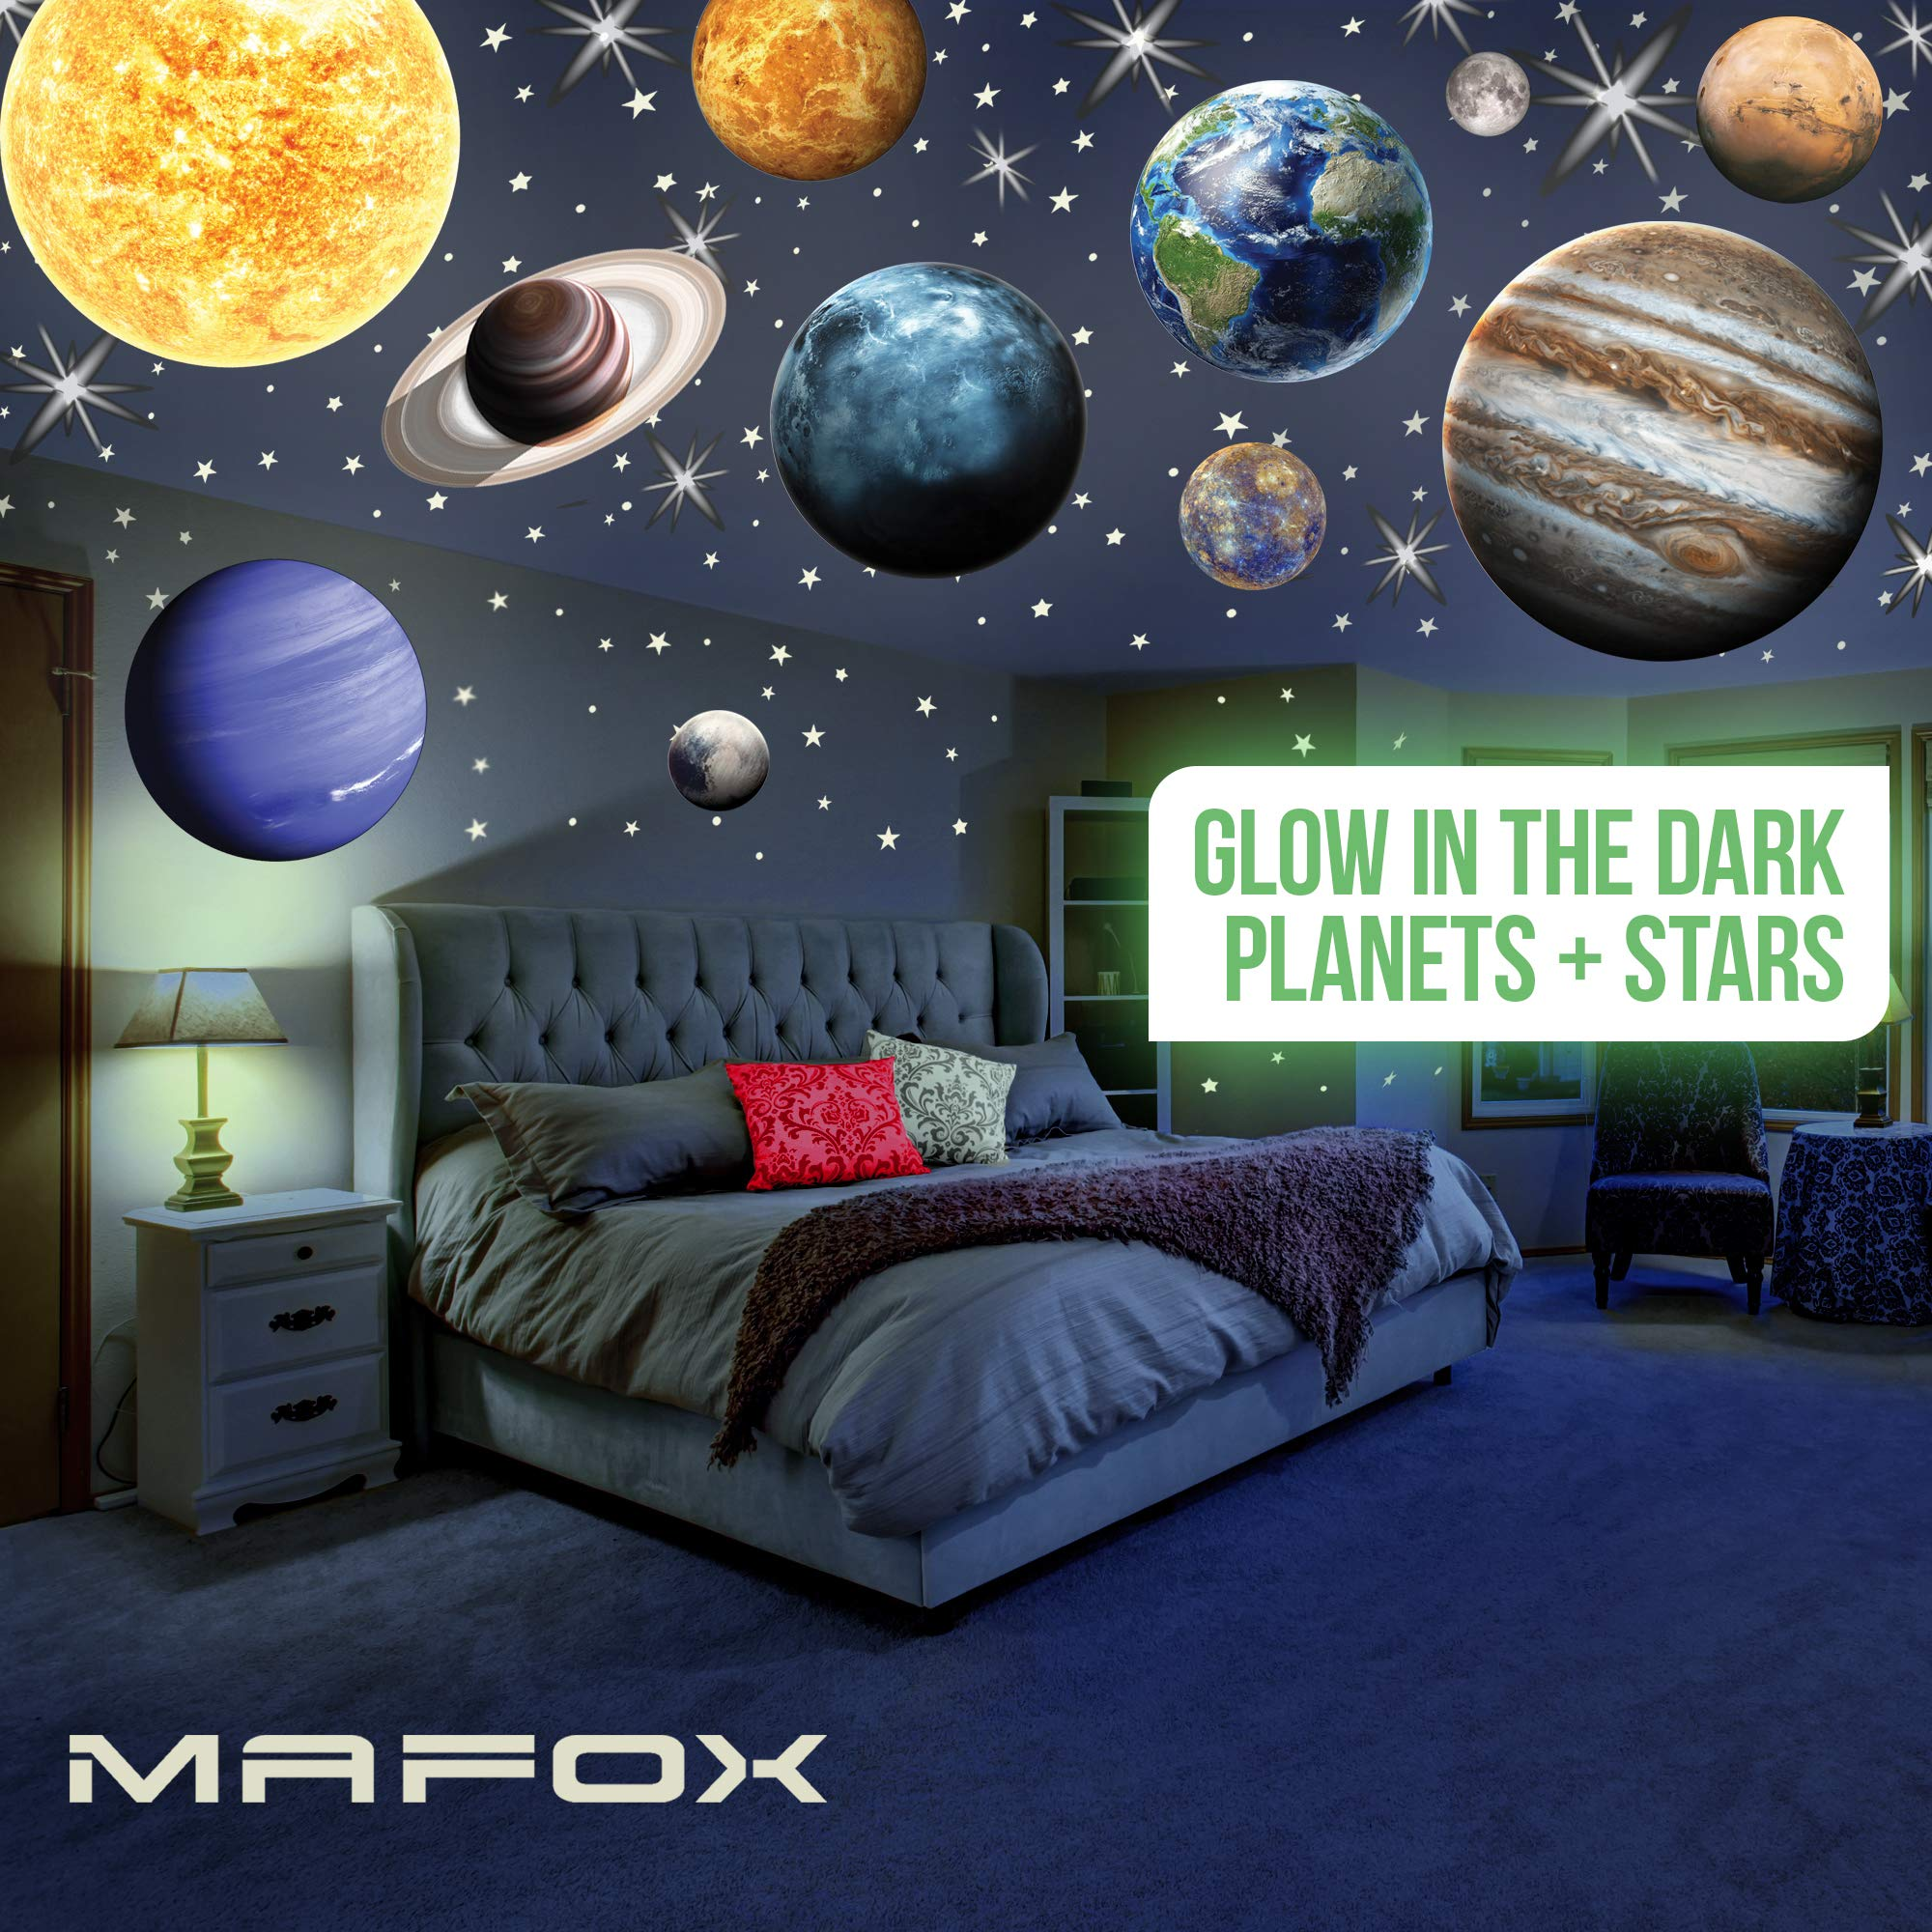 MAFOX Glow in The Dark Planets, Bright Solar System Wall Stickers -Sun Earth Mars and so on,9 Glowing Ceiling Decals for Bedroom Living Room,Shining Space Decoration for Kids for Girls and Boys by MAFOX